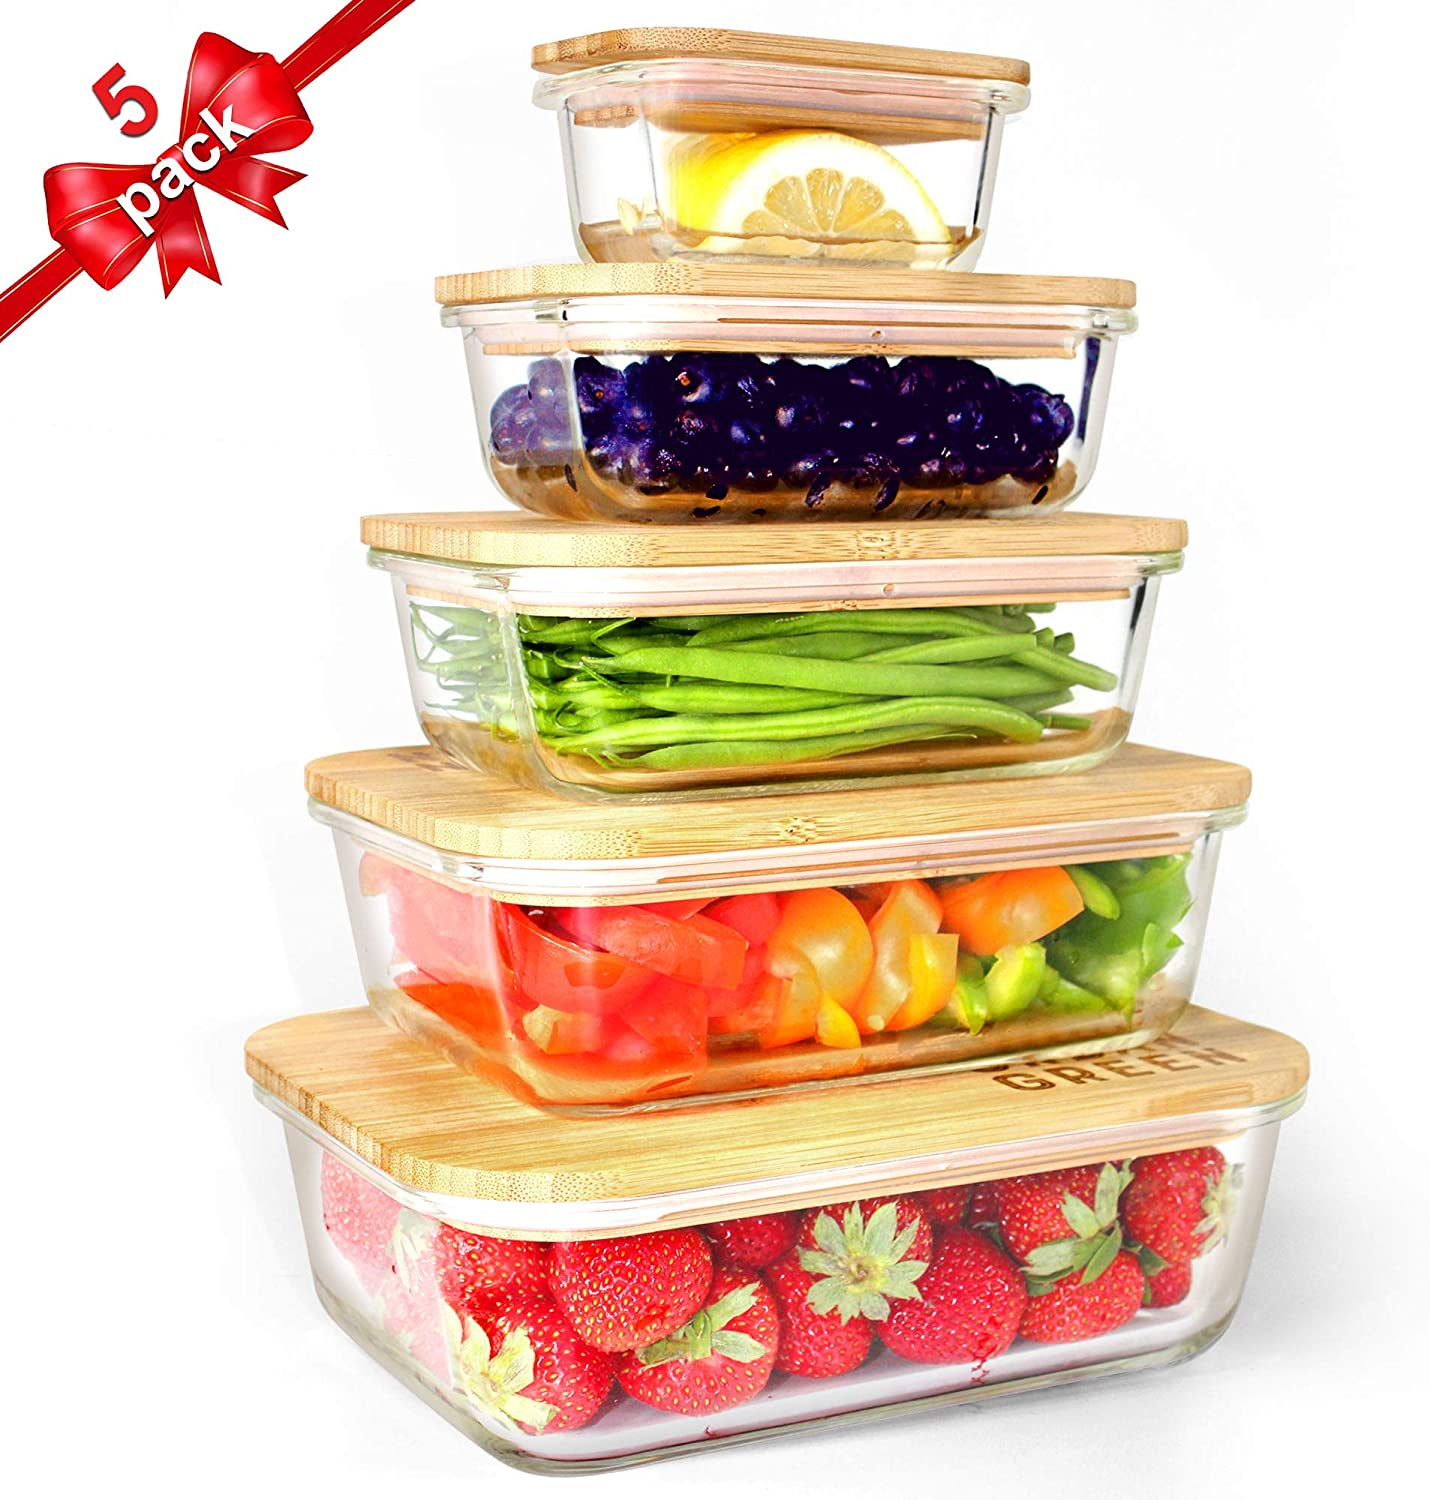 Urban Green Glass Bamboo Lids, Meal Prep Containers Food storage, 5 Pack, Pantry Kitchen Fridge Cabinet Organizer, Lunch box, Butter Dish, Microwave Oven,